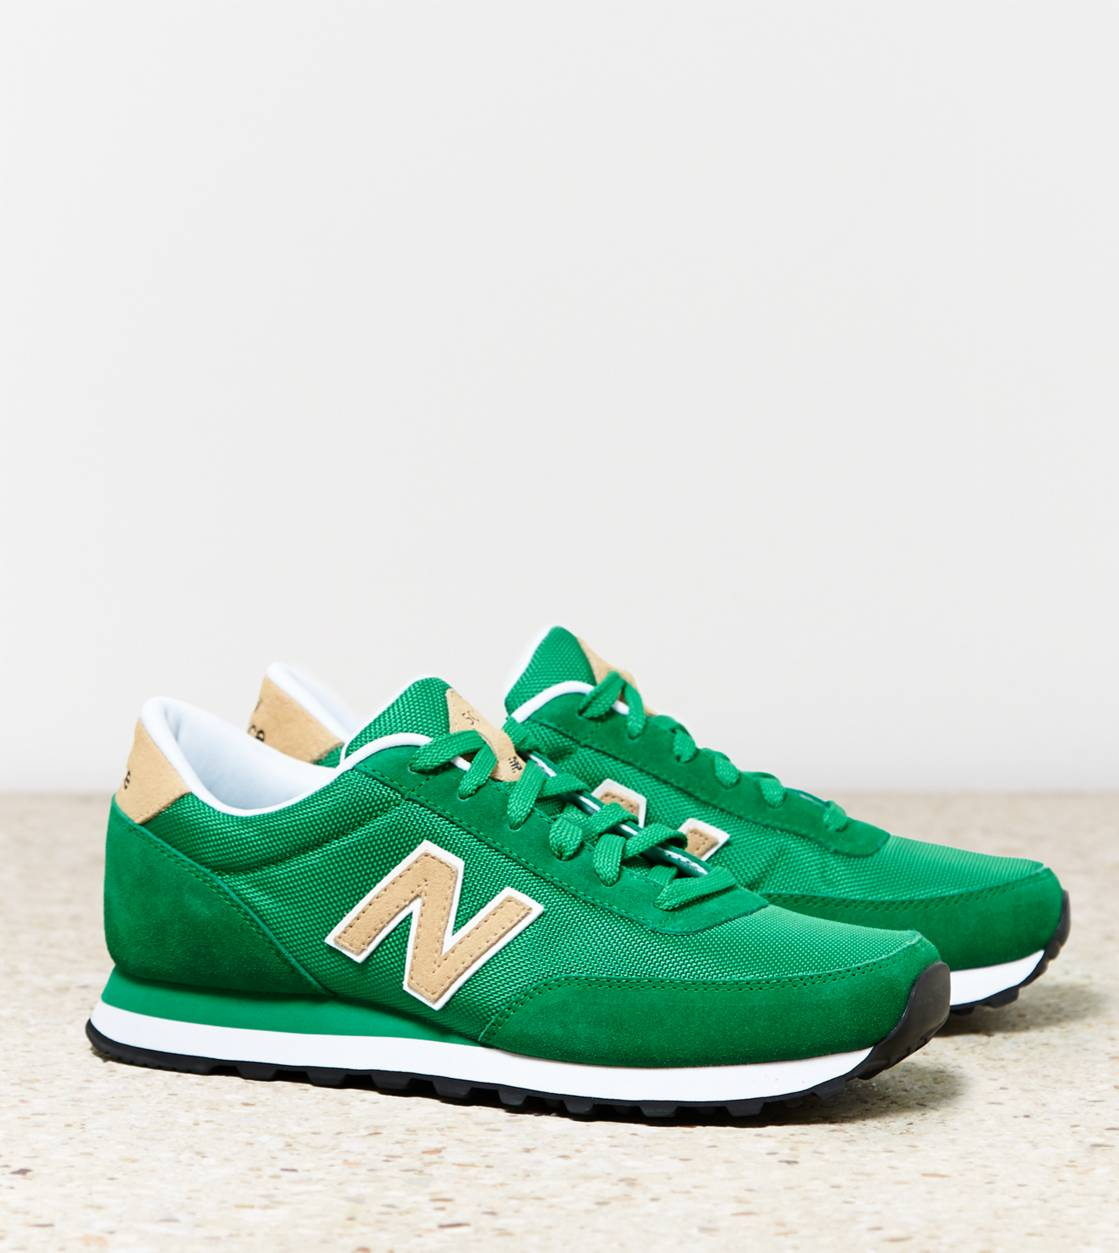 Green New Balance 501 Sneaker